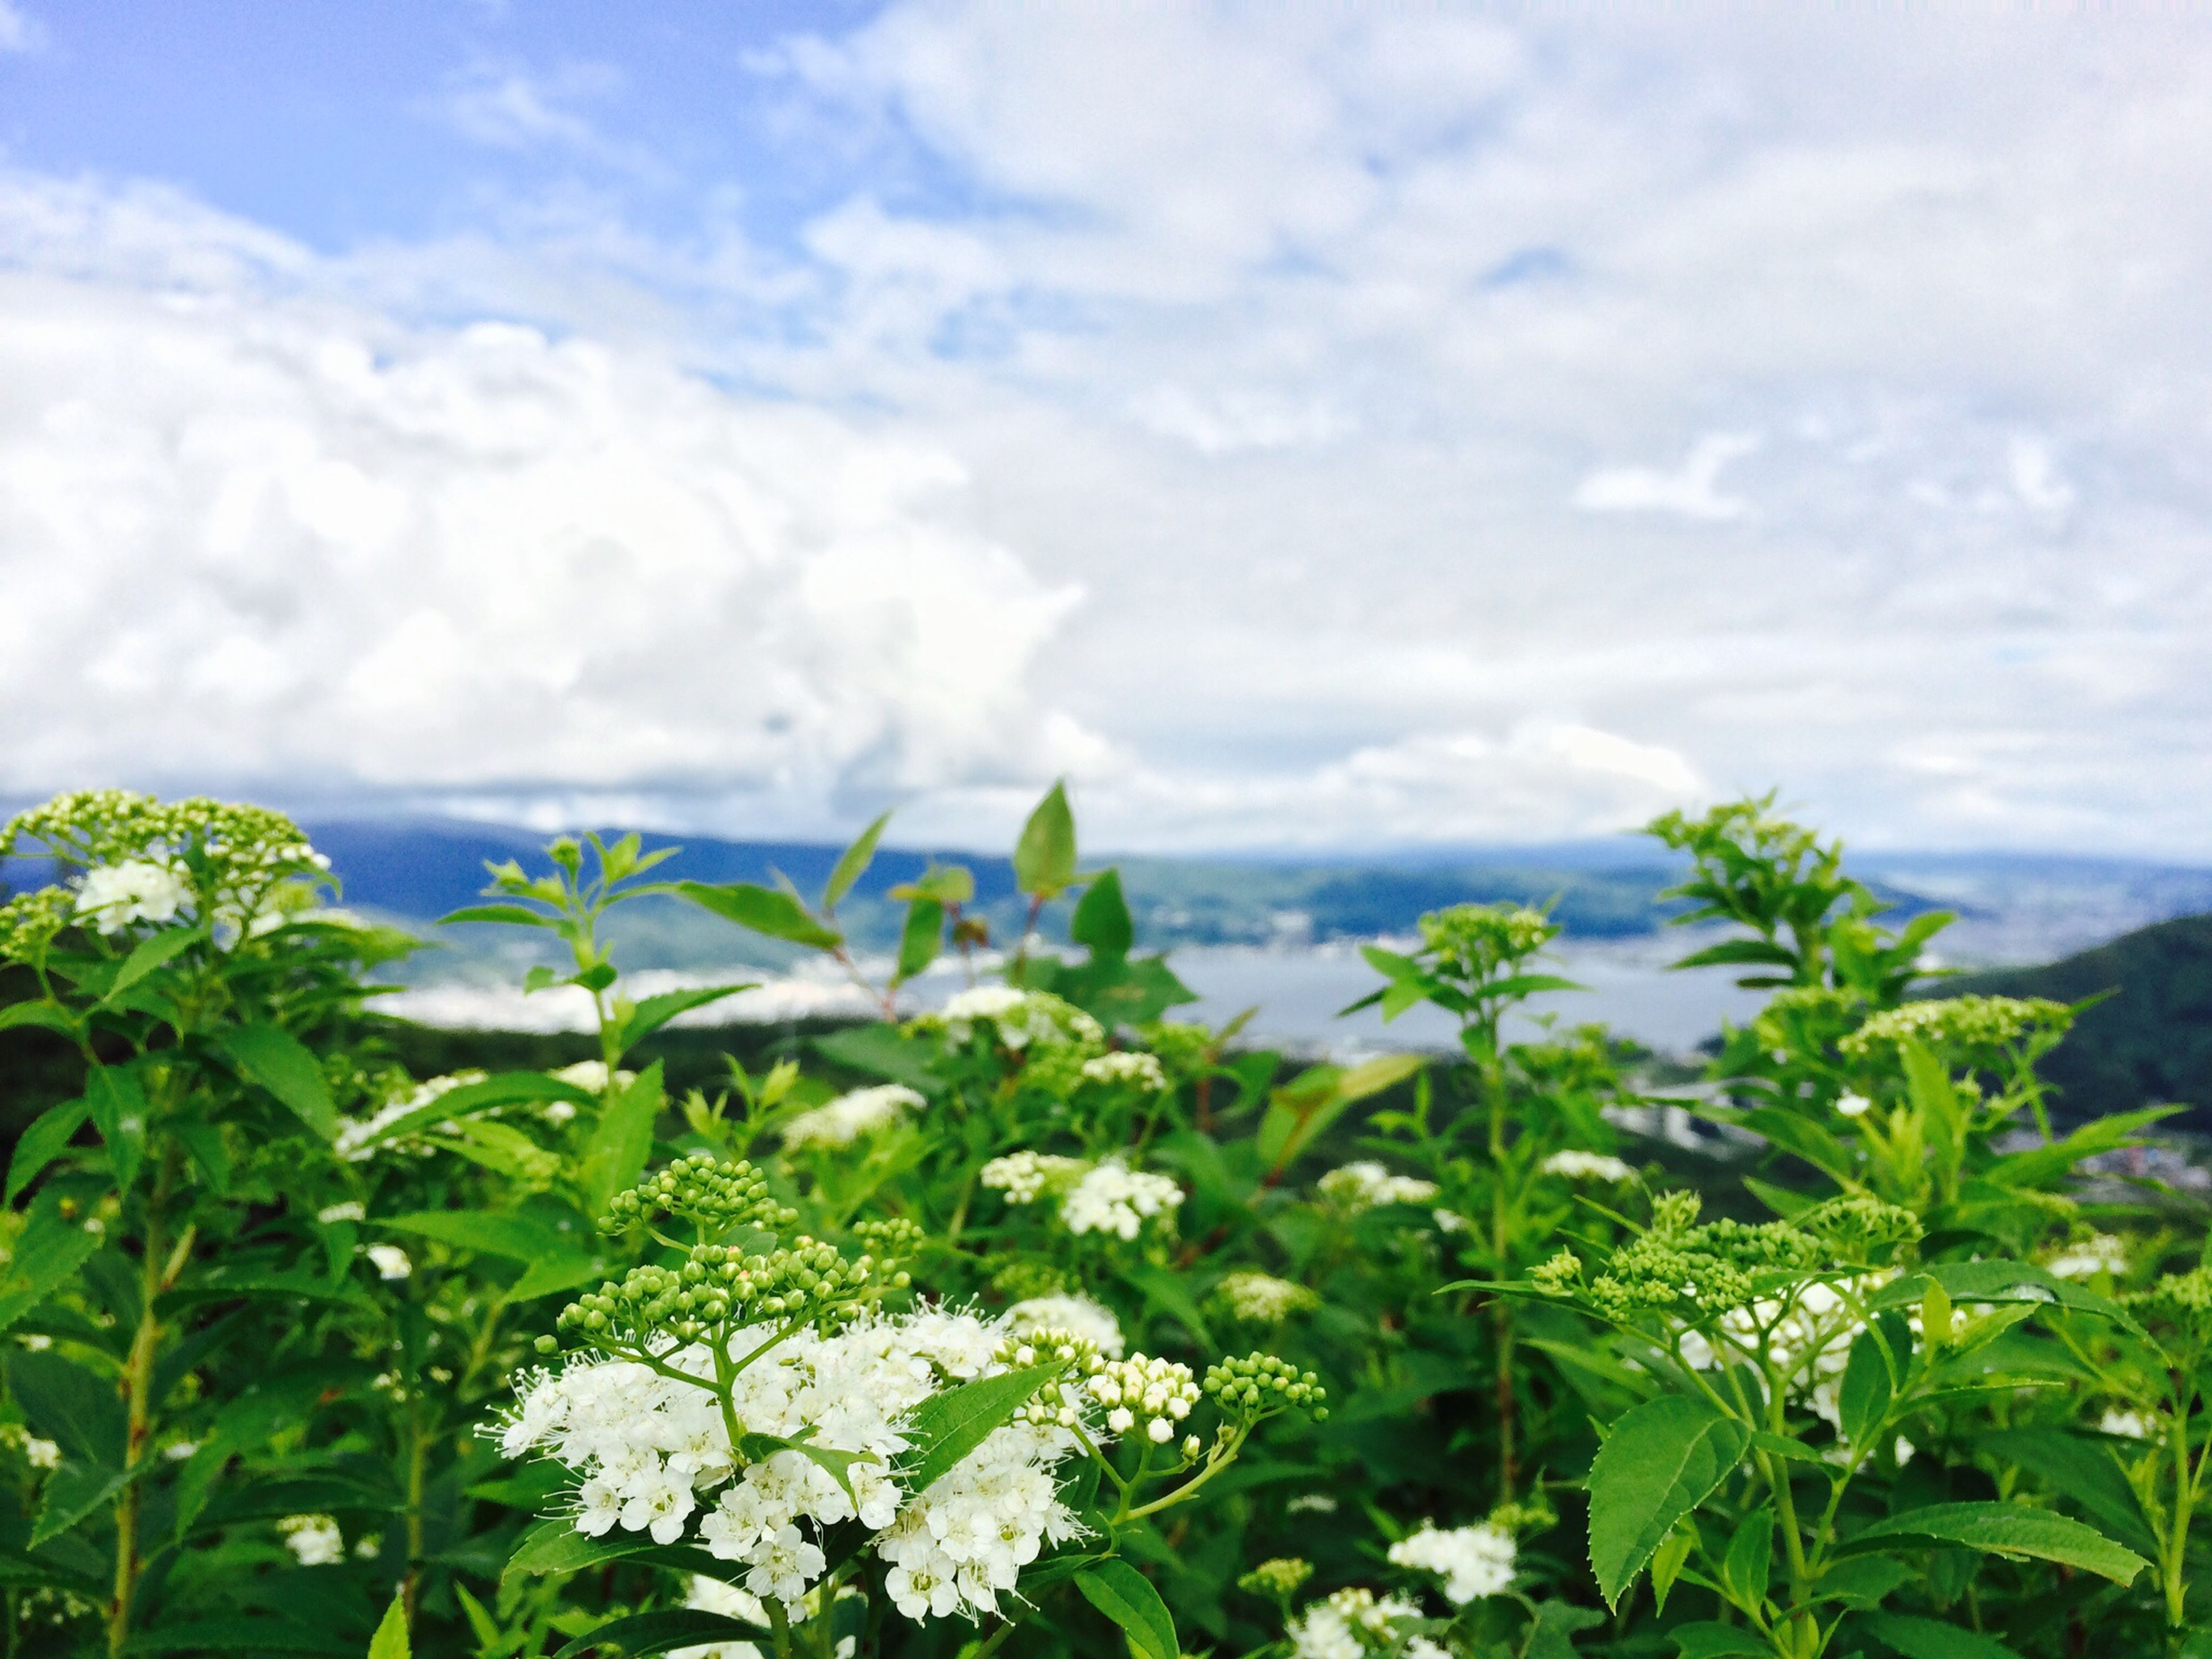 flower, sky, growth, beauty in nature, cloud - sky, plant, freshness, nature, white color, cloudy, fragility, green color, cloud, scenics, tranquil scene, tranquility, blooming, day, outdoors, leaf